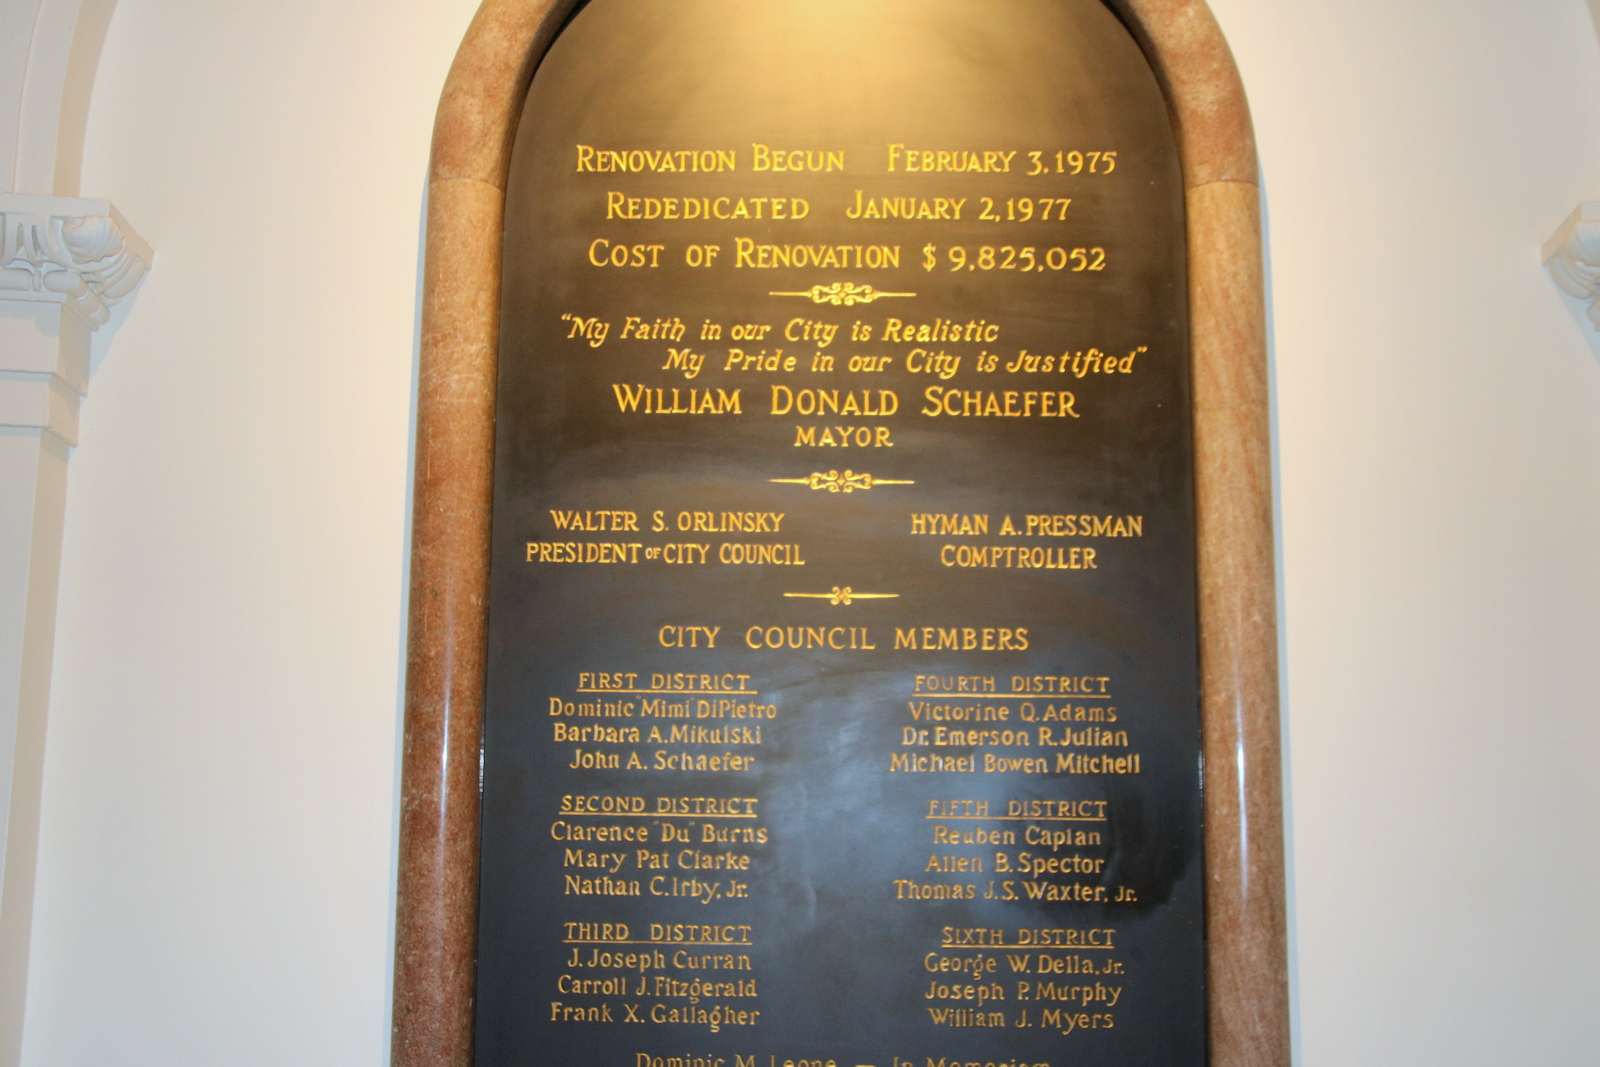 Plaque commemorating the rebuilding of City Hall under Mayor William Donald Schaefer in 1977. Notice the cost of renovation. (Fern Shen)